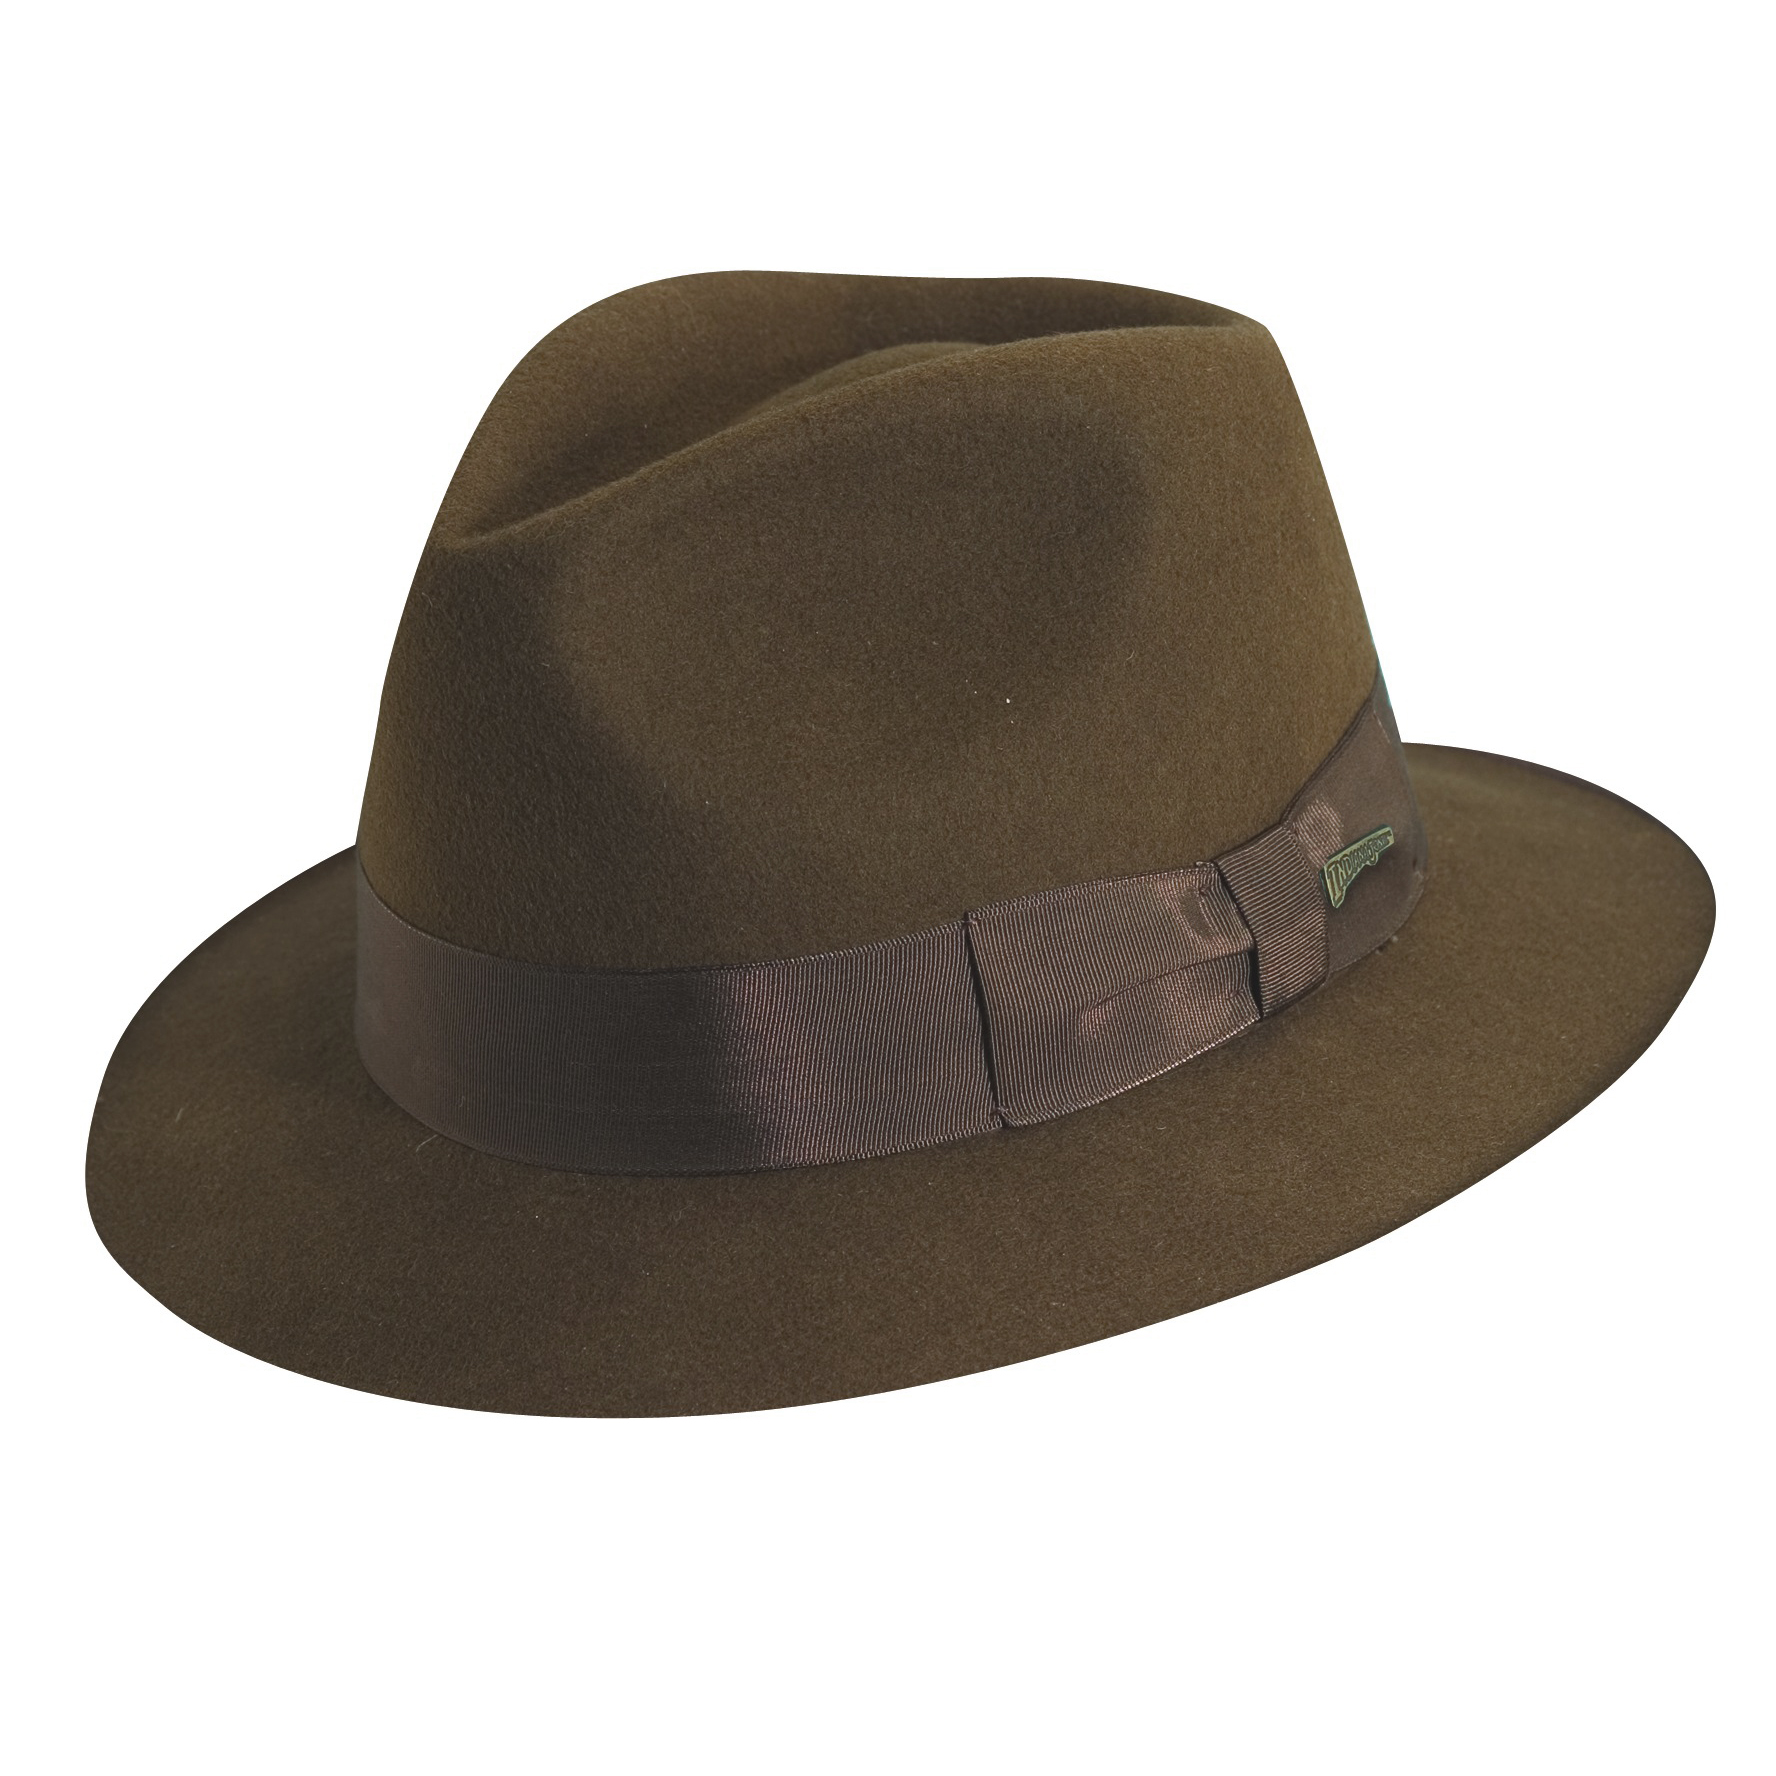 Indiana Jones Crushable Wool Fedora Hat Indiana Jones Wool Felt Fedora